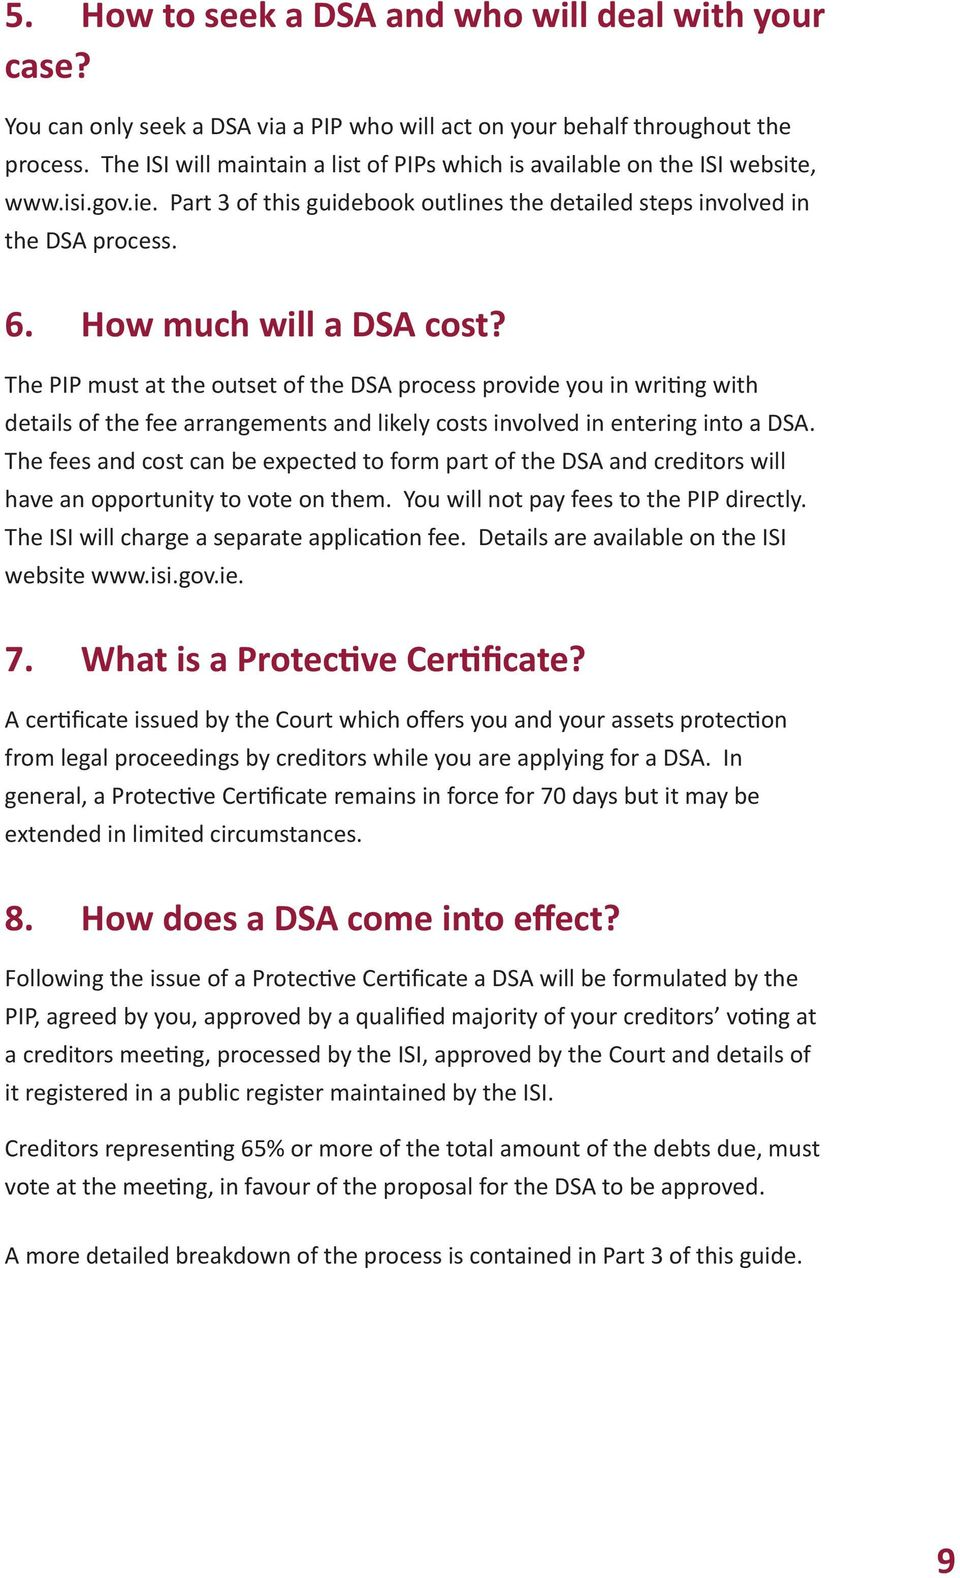 How much will a DSA cost? The PIP must at the outset of the DSA process provide you in writing with details of the fee arrangements and likely costs involved in entering into a DSA.